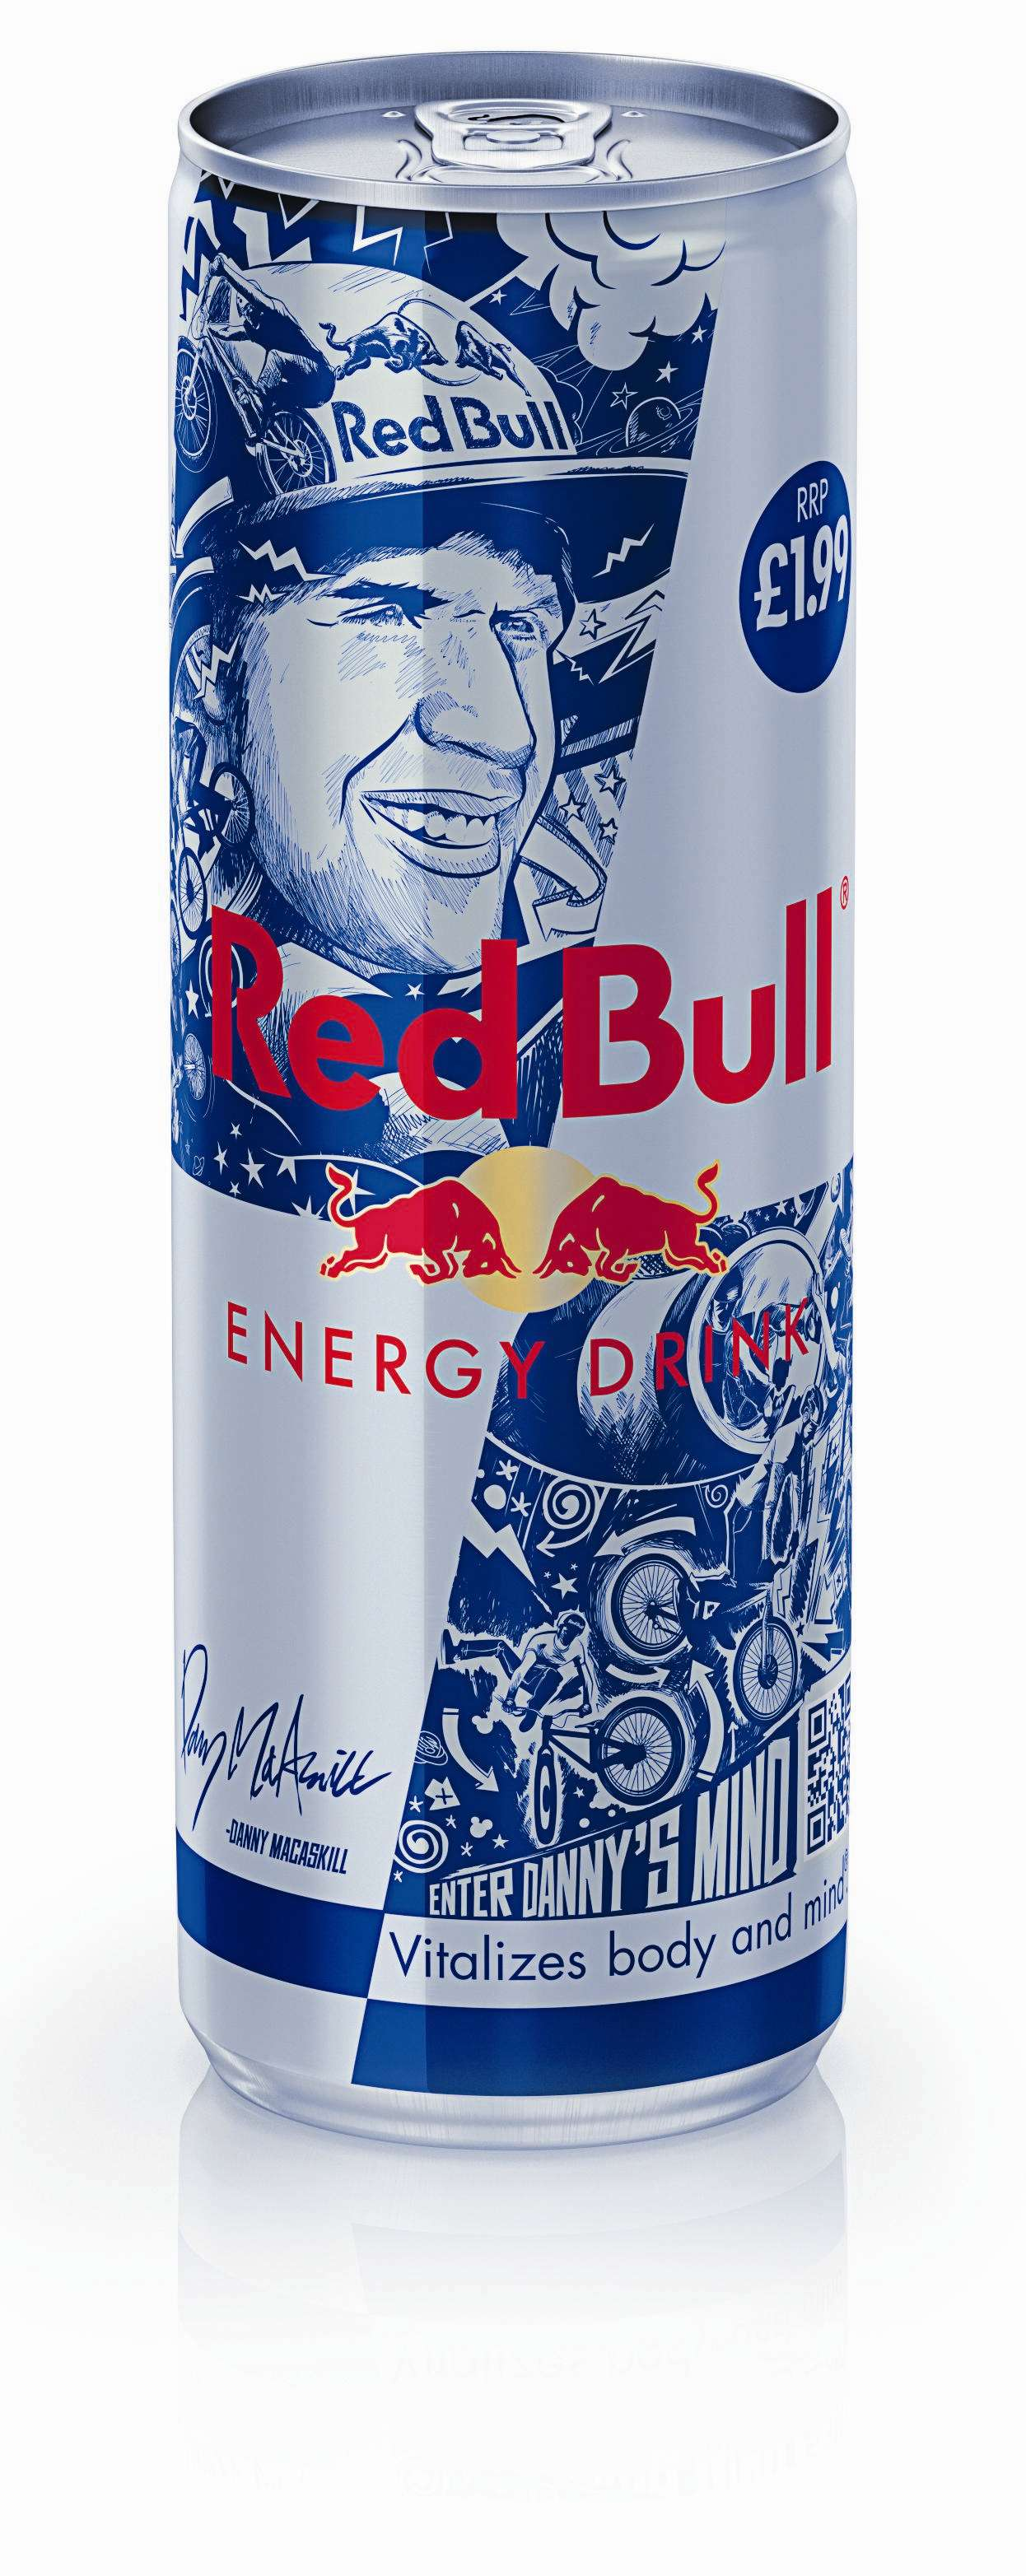 red bull unveils danny macaskill can